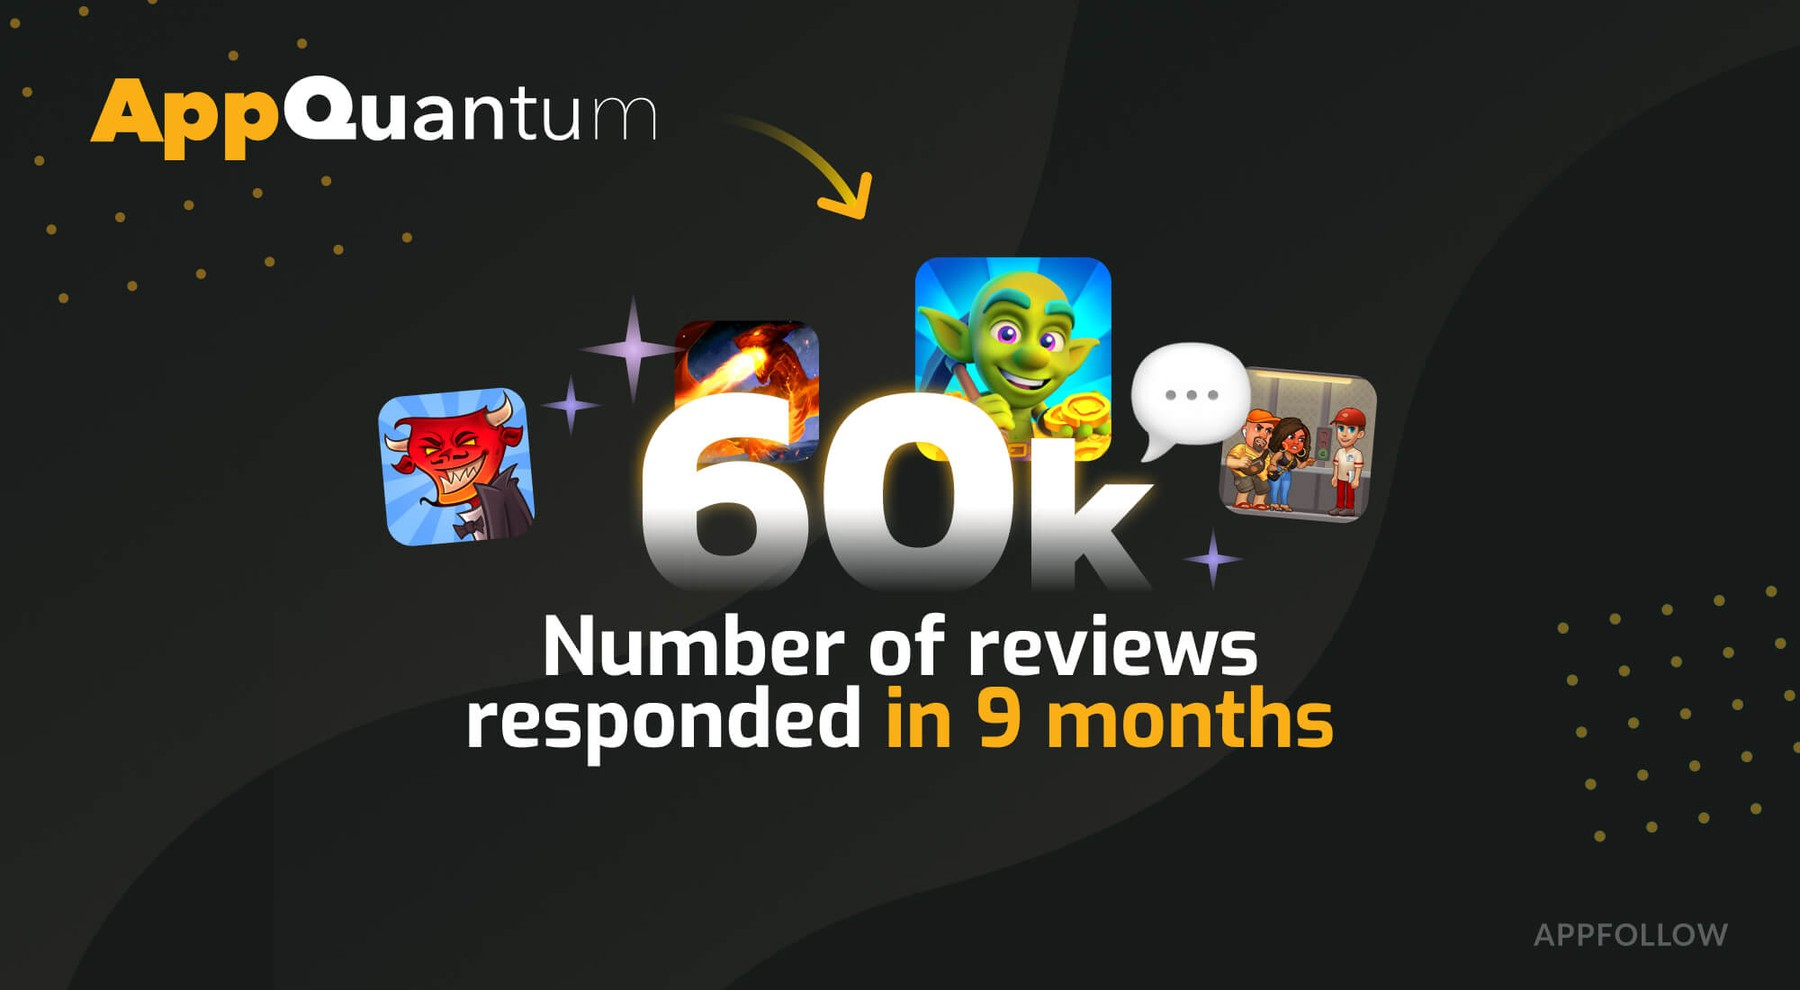 AppQuantum uses bulk actions to manage reviews in AppFollow